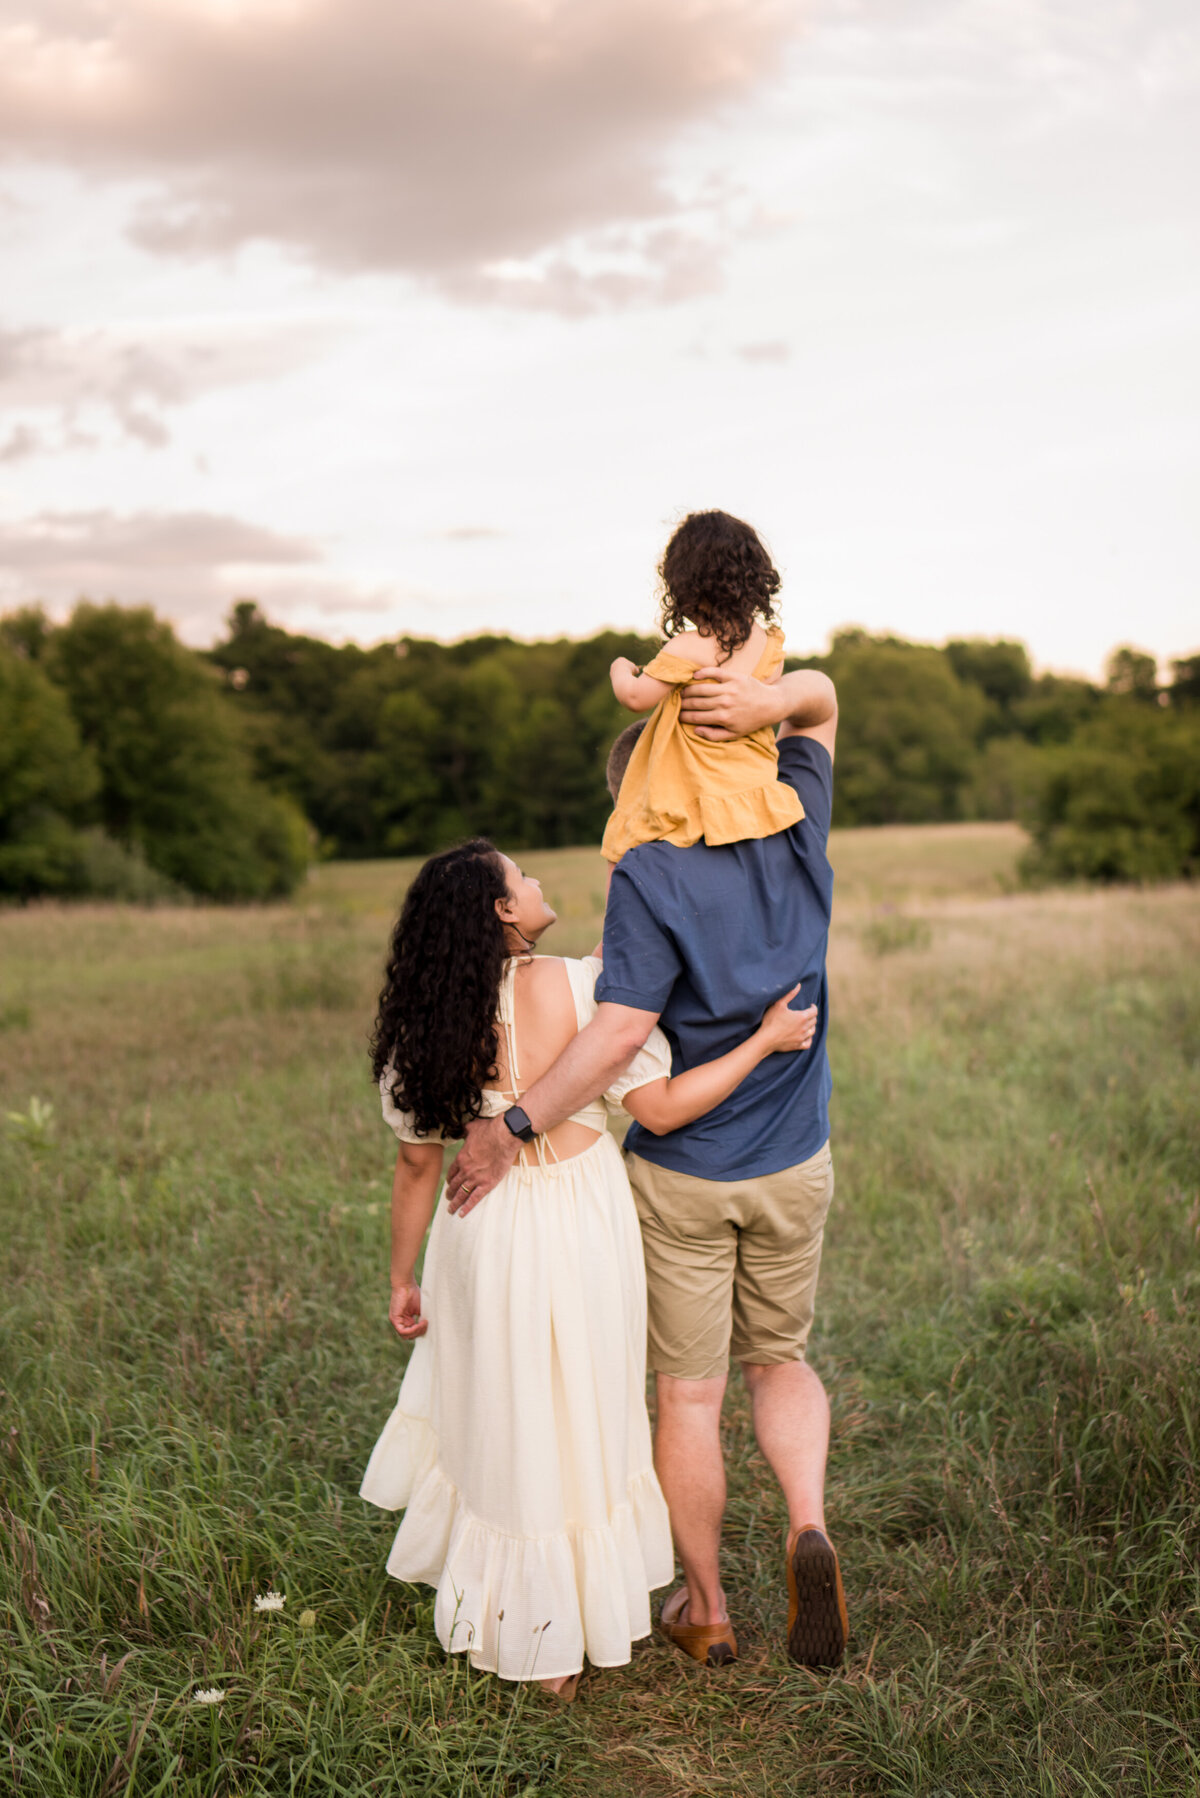 Boston-family-photographer-bella-wang-photography-Lifestyle-session-outdoor-wildflower-91